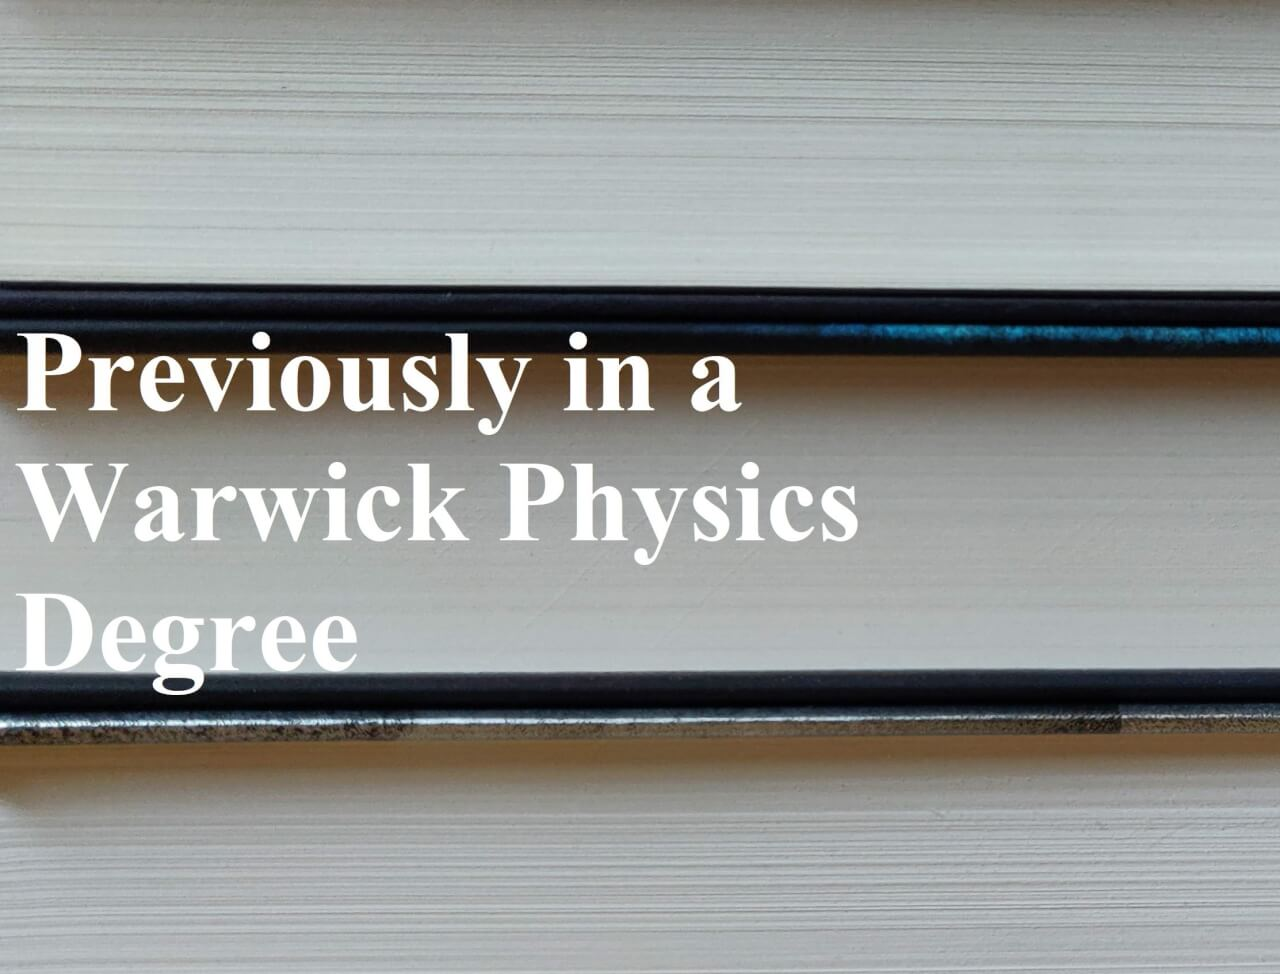 Previously in a Warwick Physics Degree